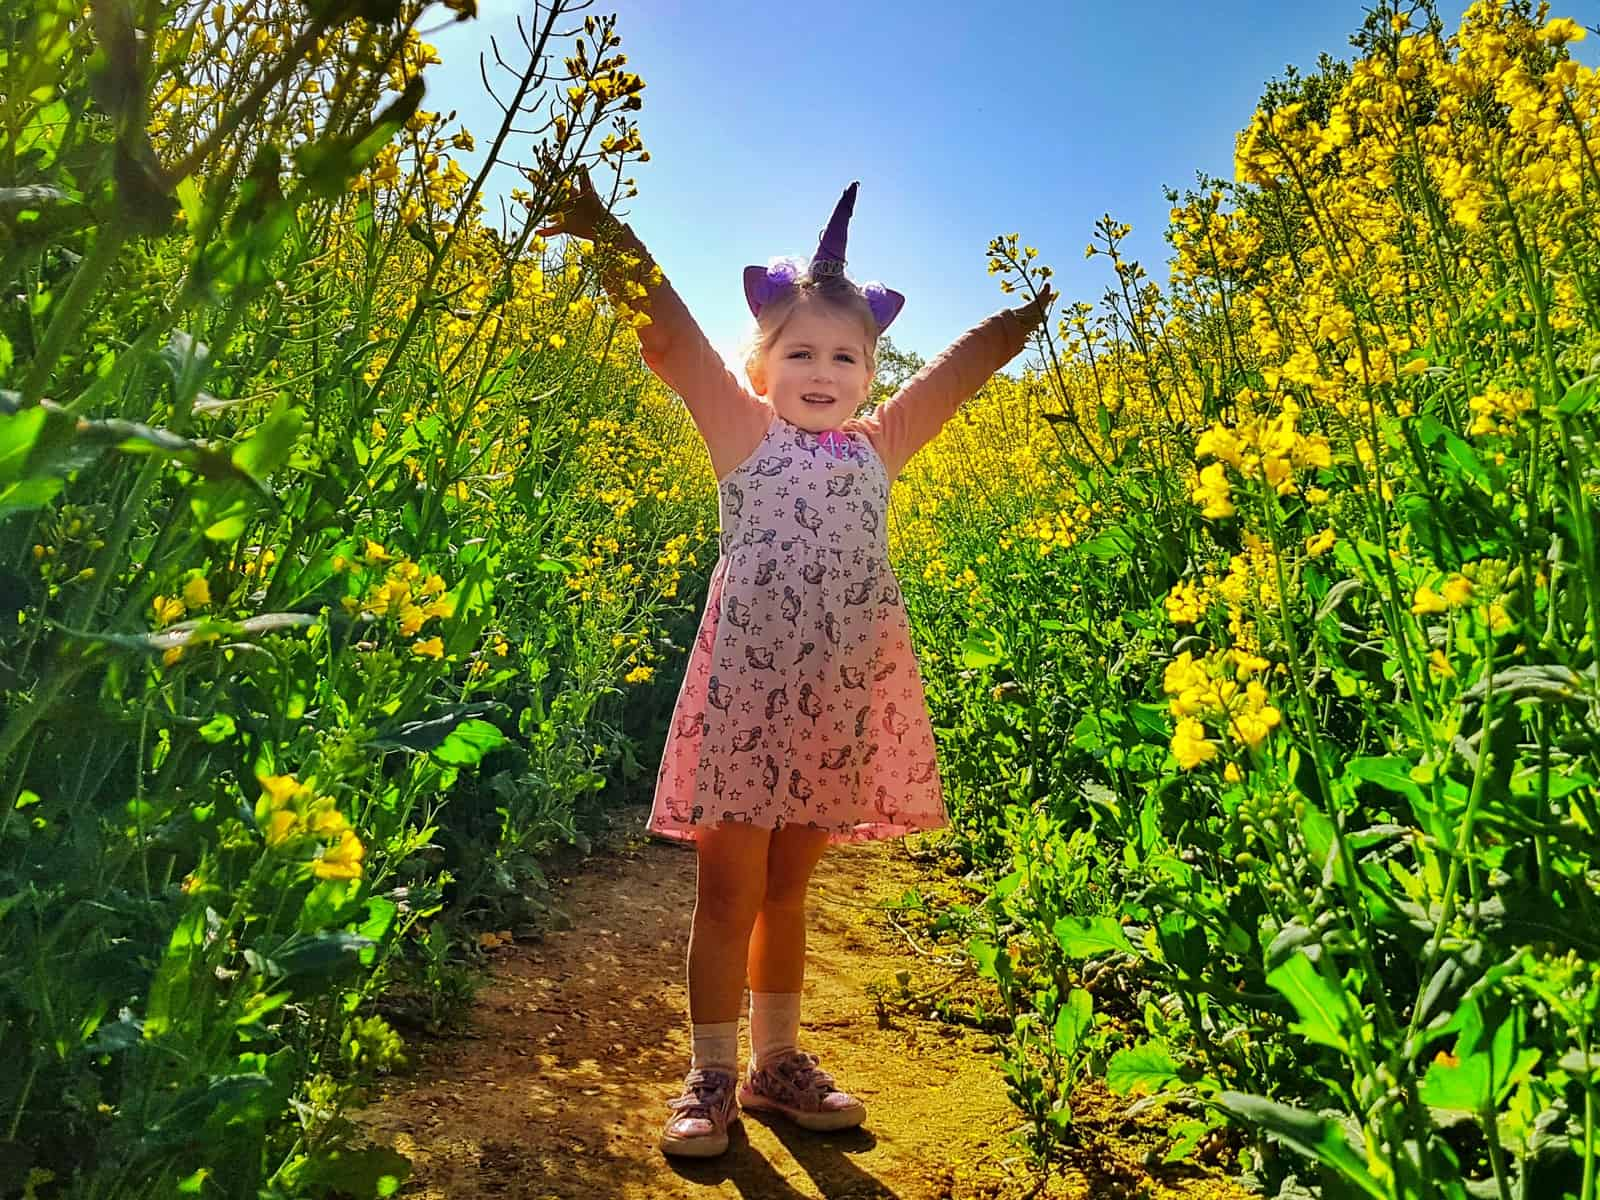 Little girl with unicorn horn hairband on standing in a field of oilseed rape